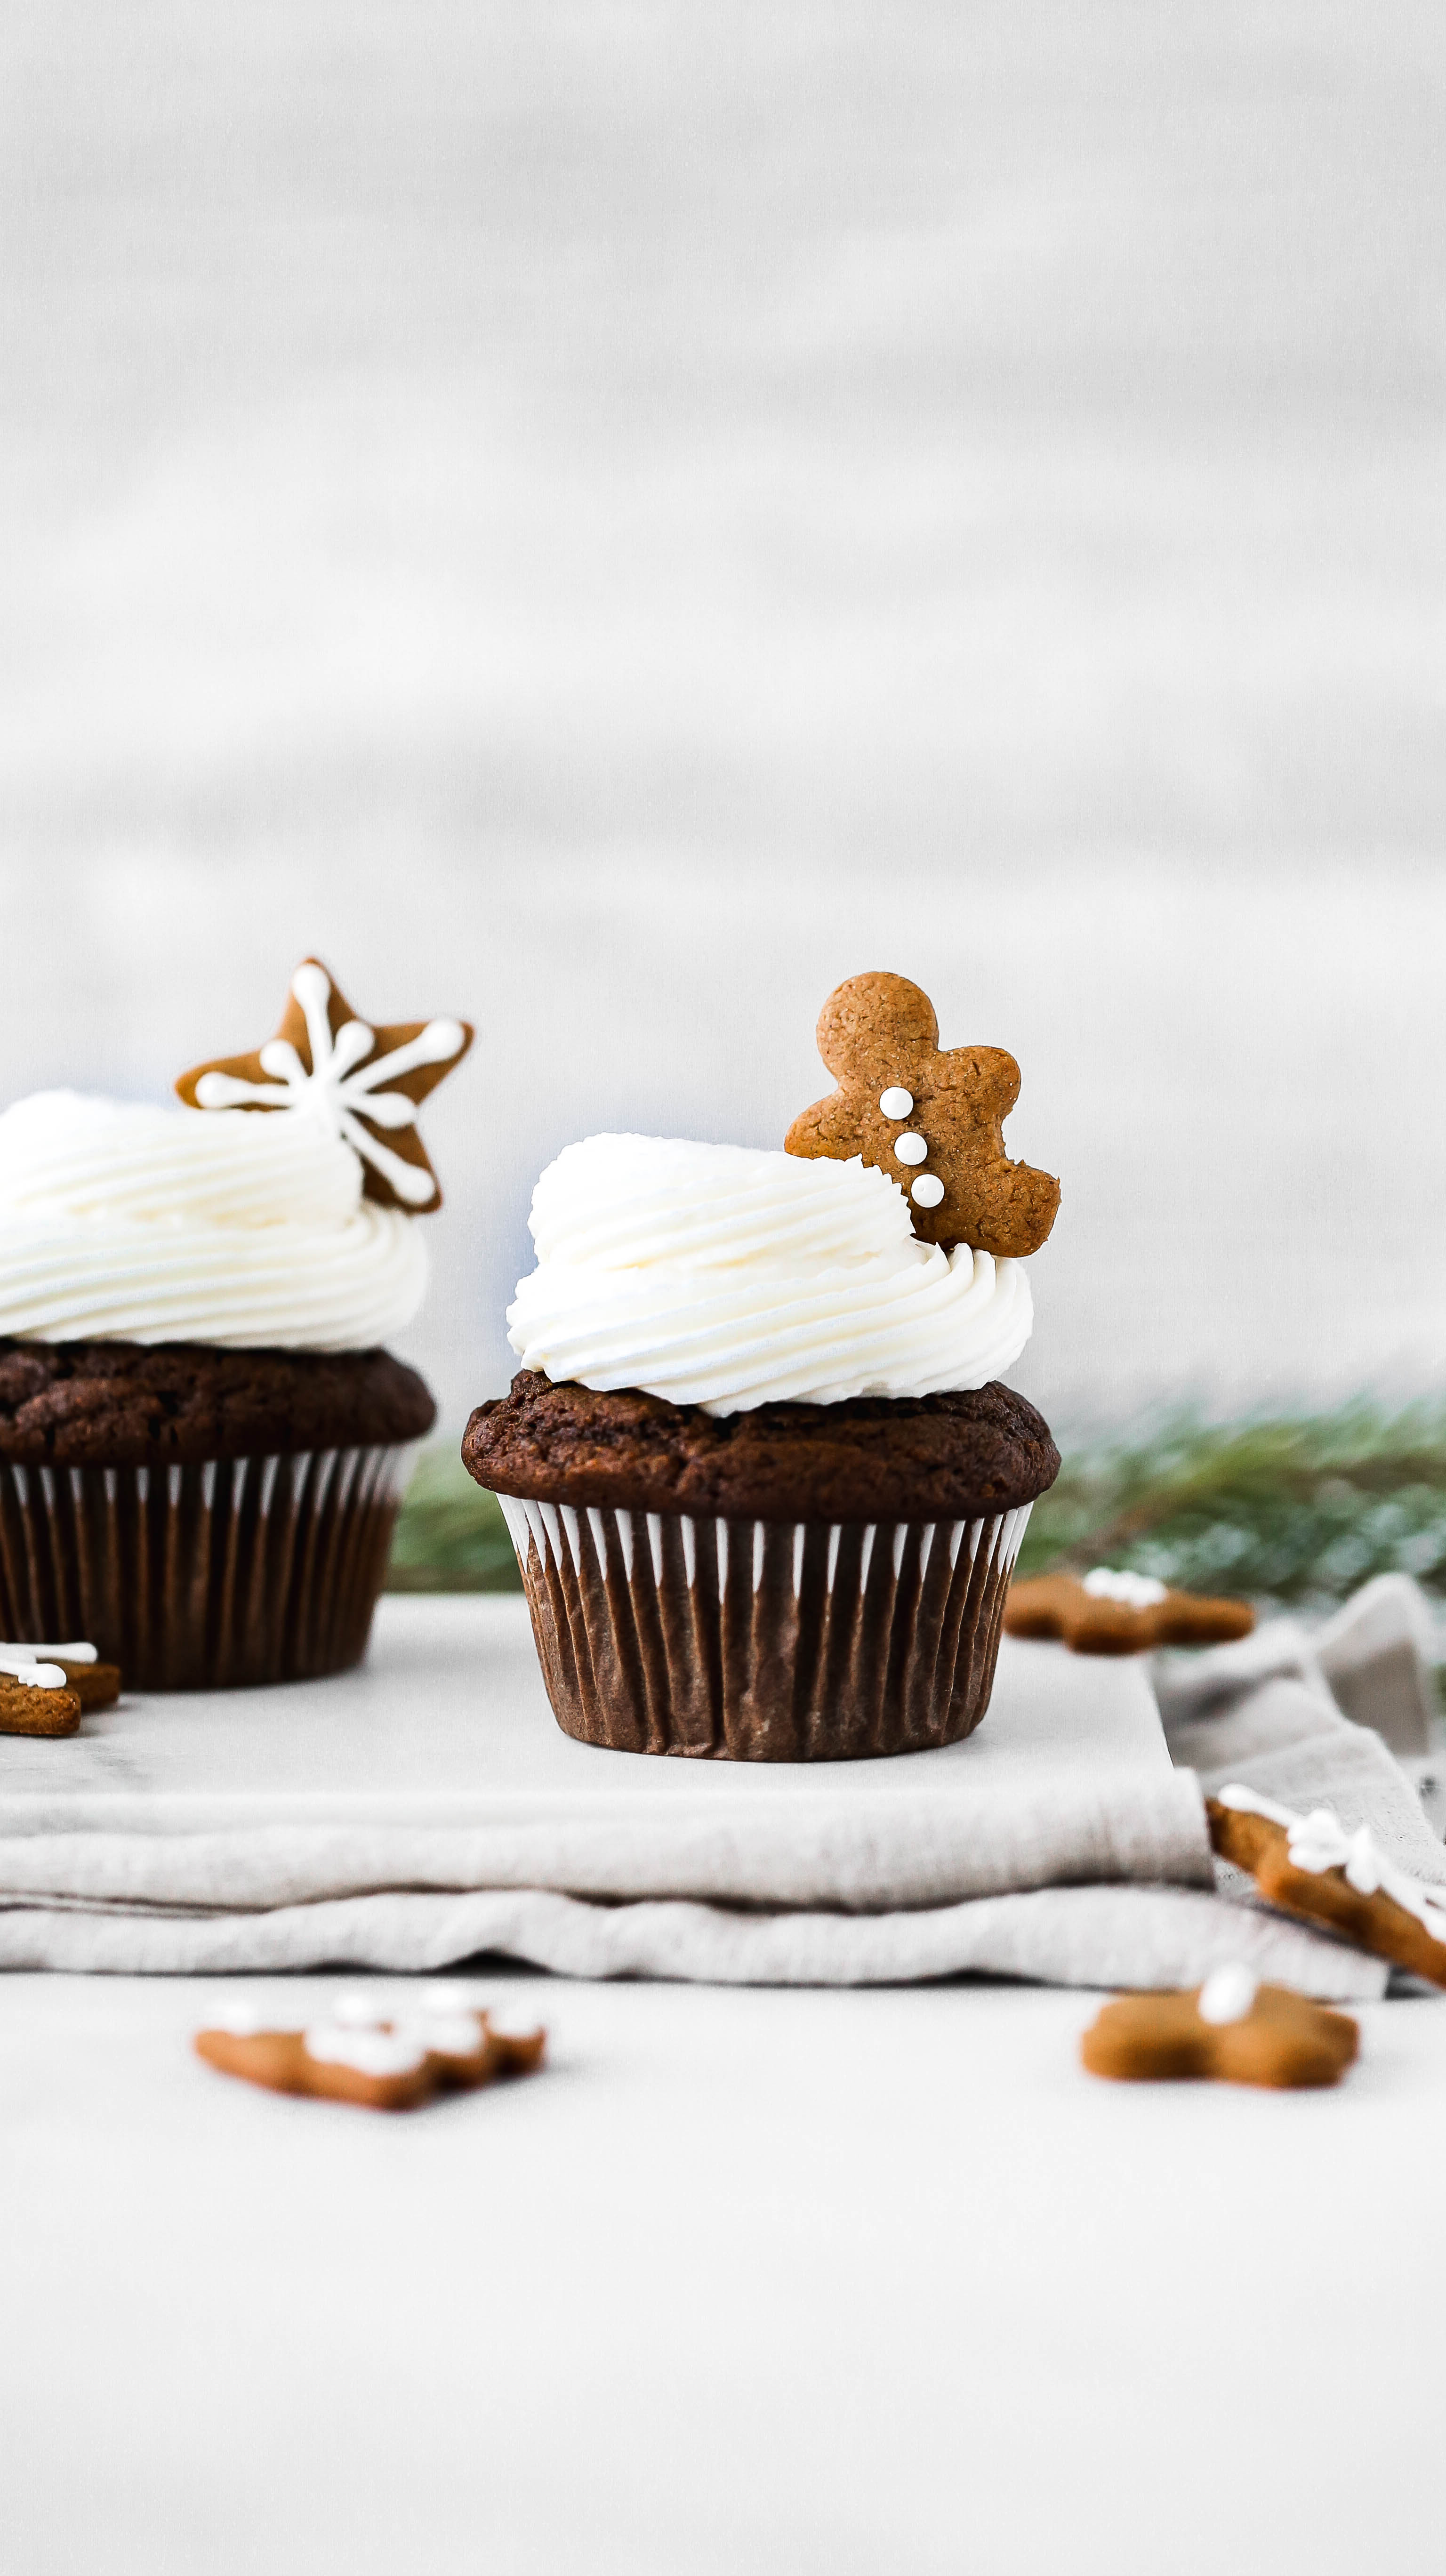 a gingerbread cupcake with a tiny gingerbread cookie on top